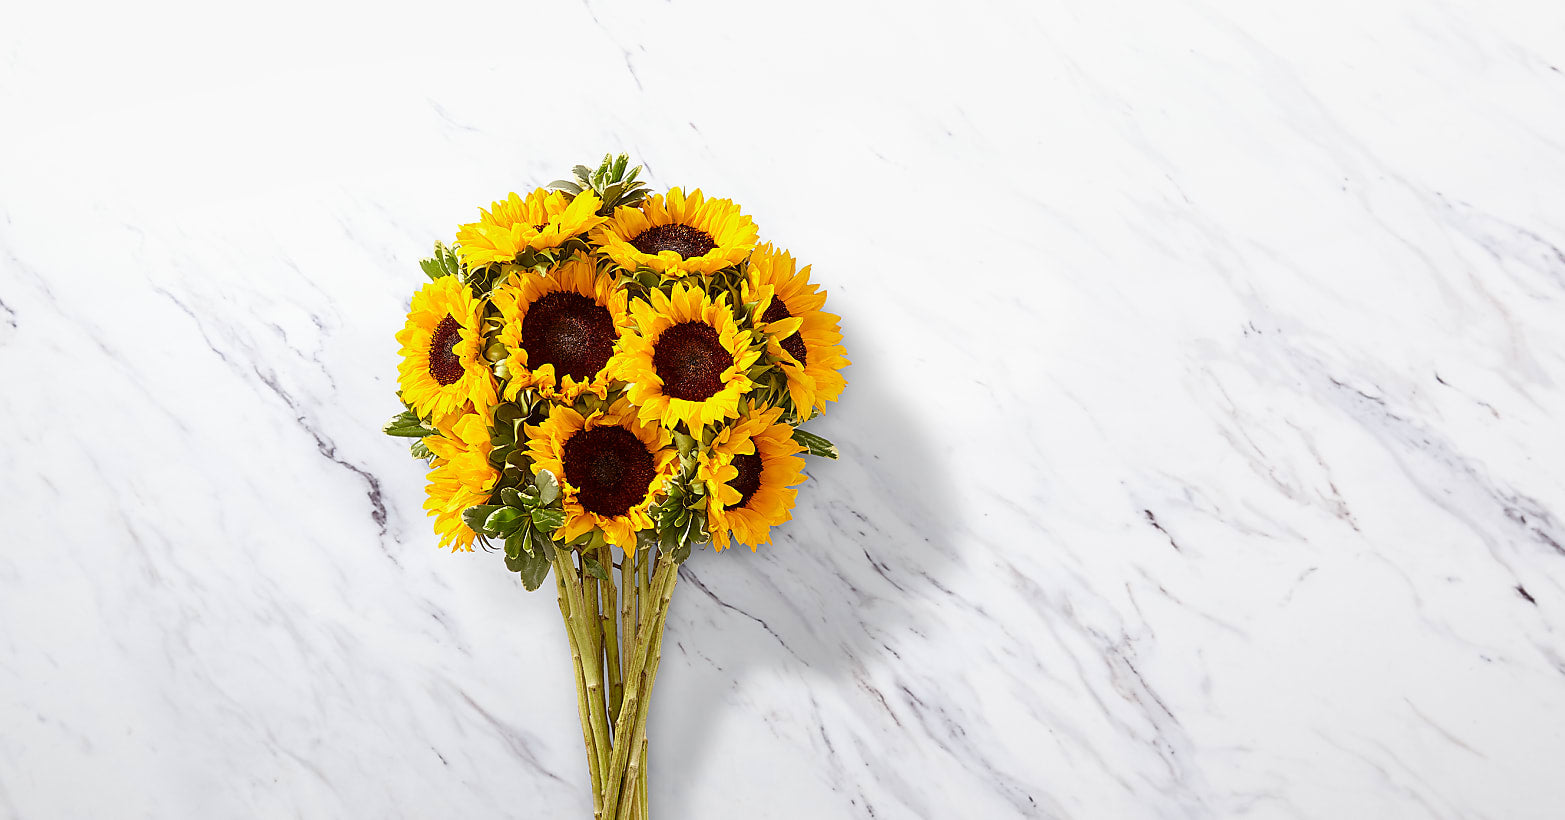 Endless Summer Sunflower Bouquet - 9 Stems with Vase - Image 2 Of 4